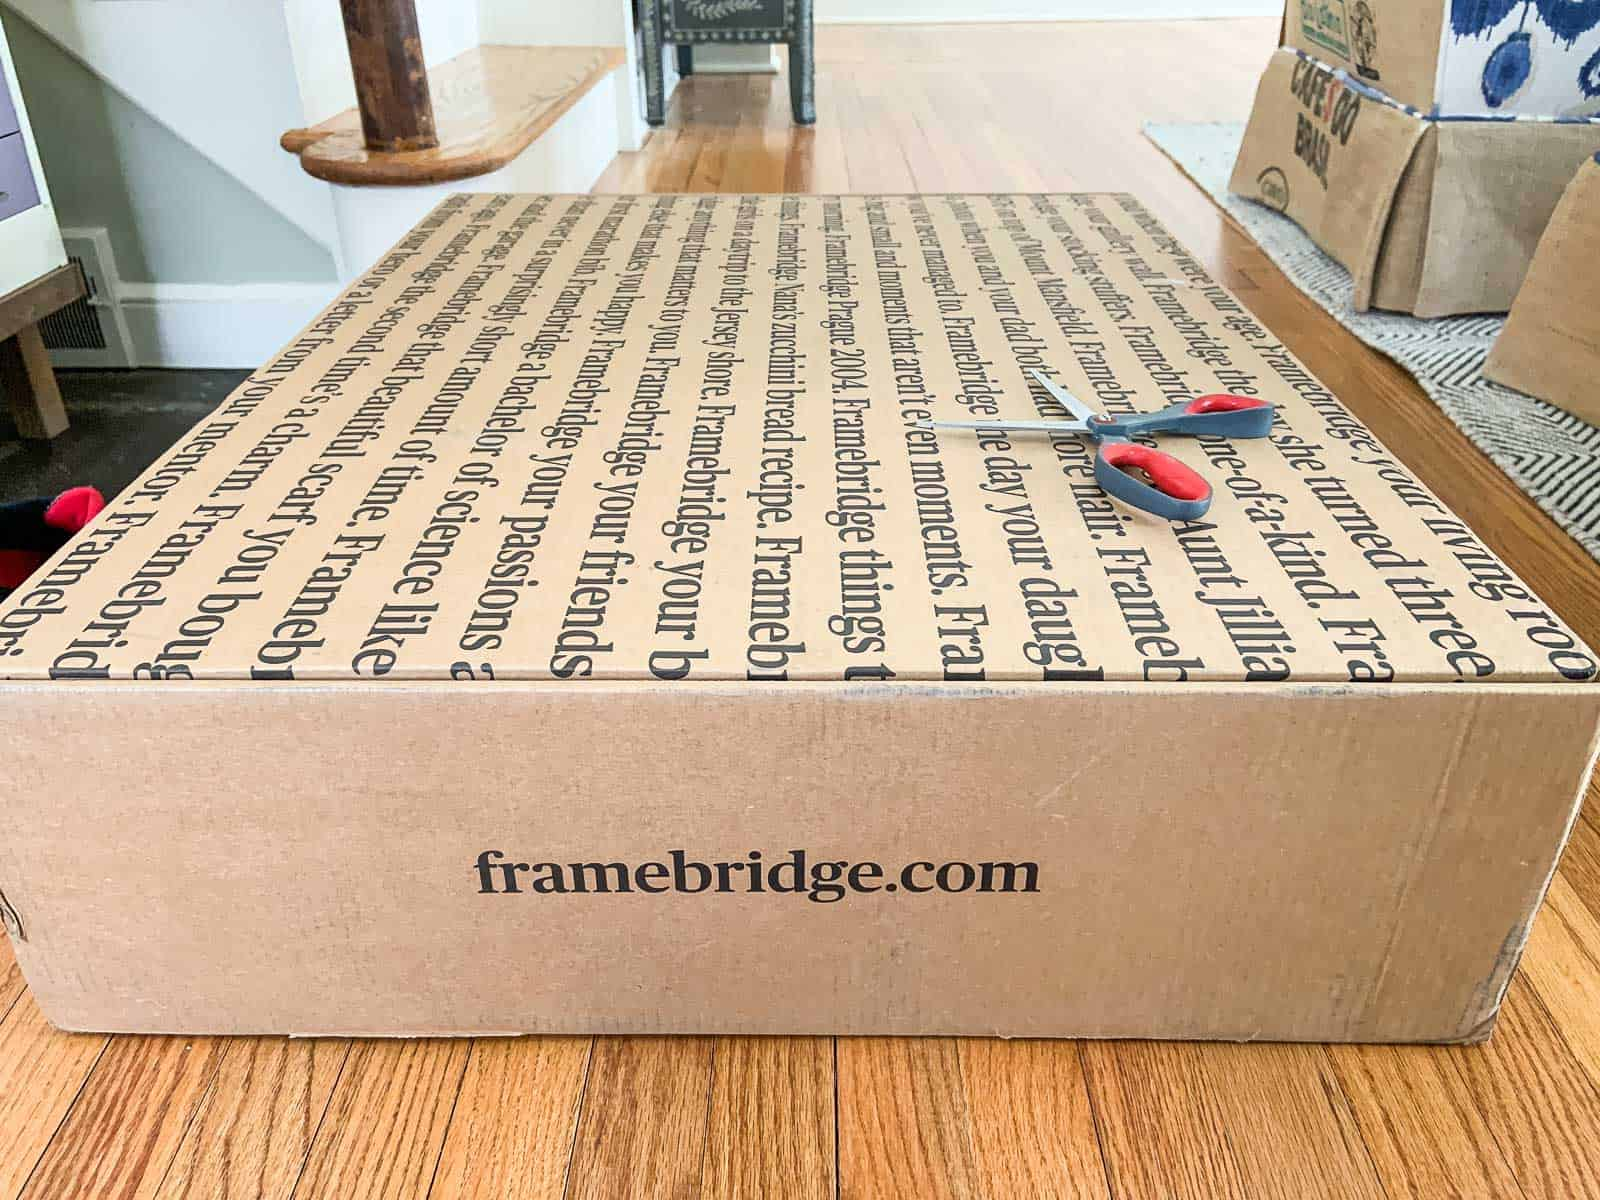 framebridge box with artwork